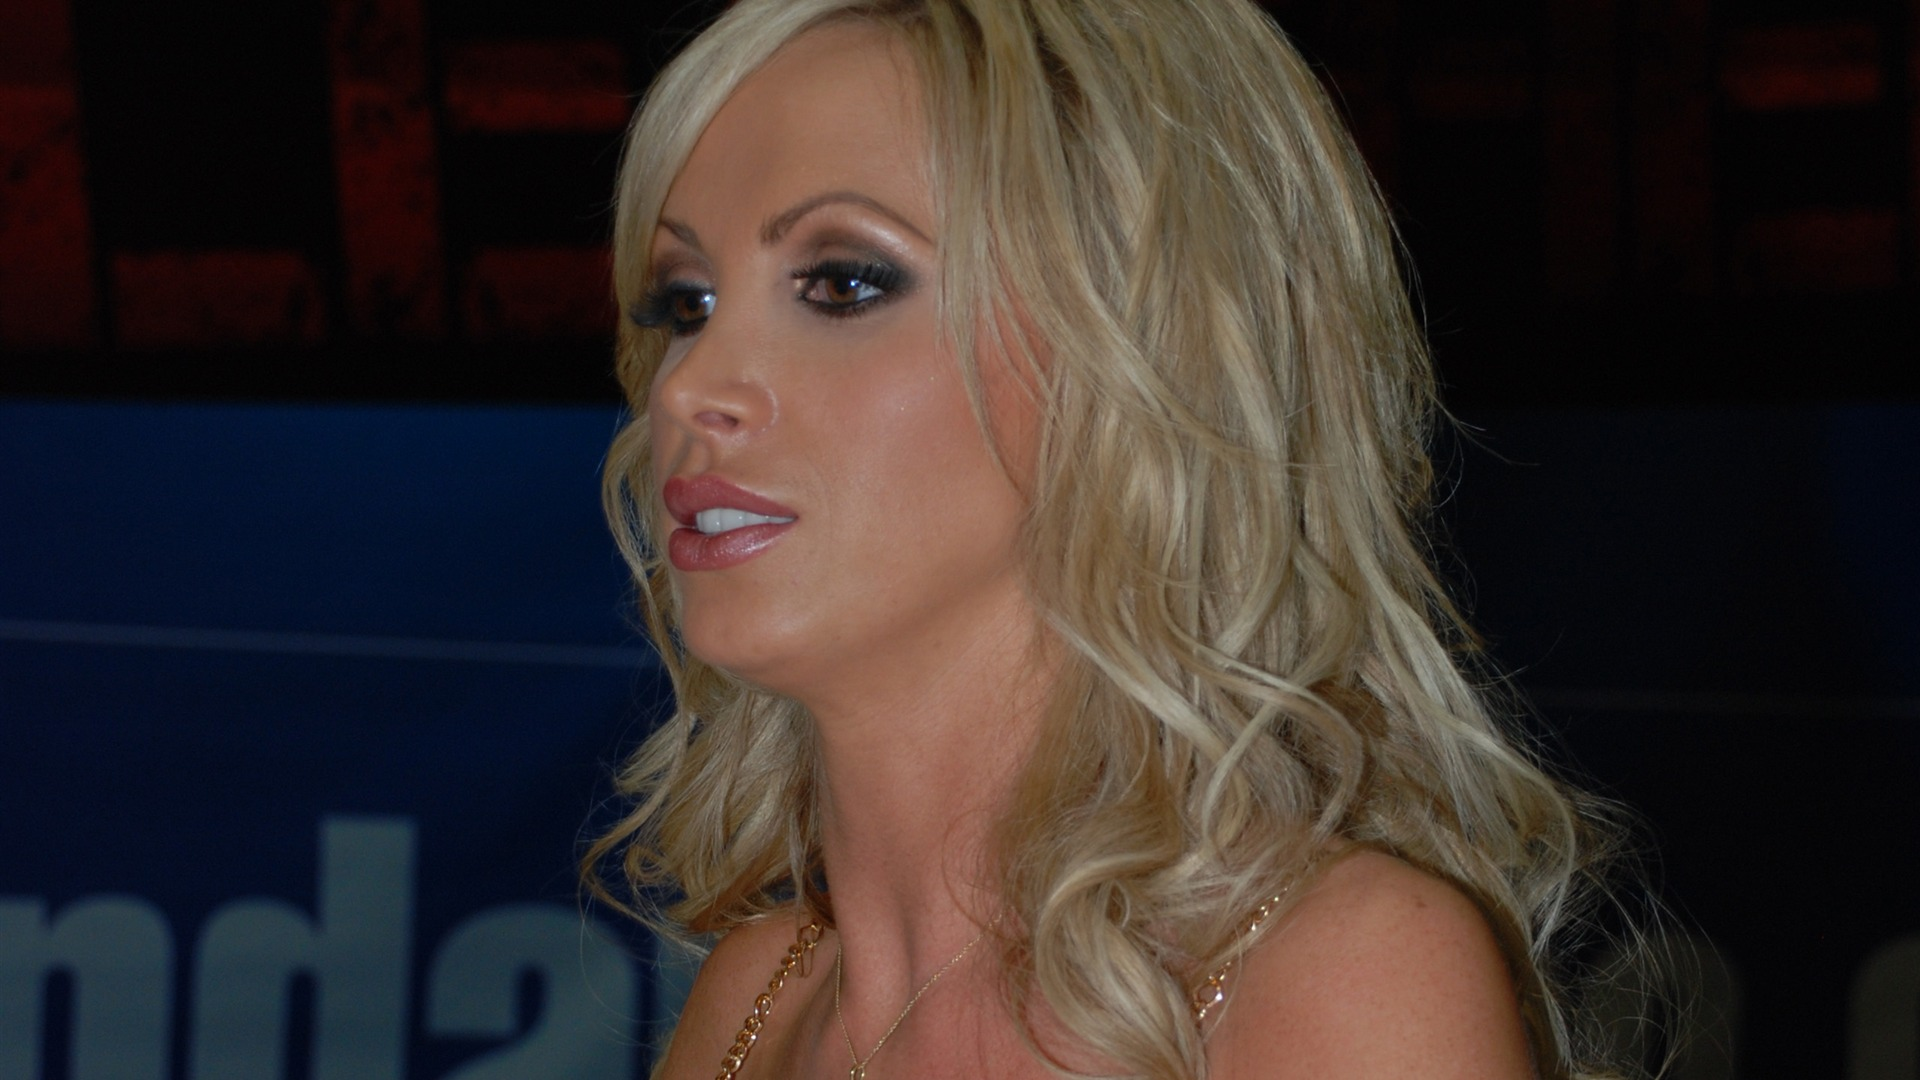 Nikki Benz #008 - 1920x1080 Wallpapers Pictures Photos Images